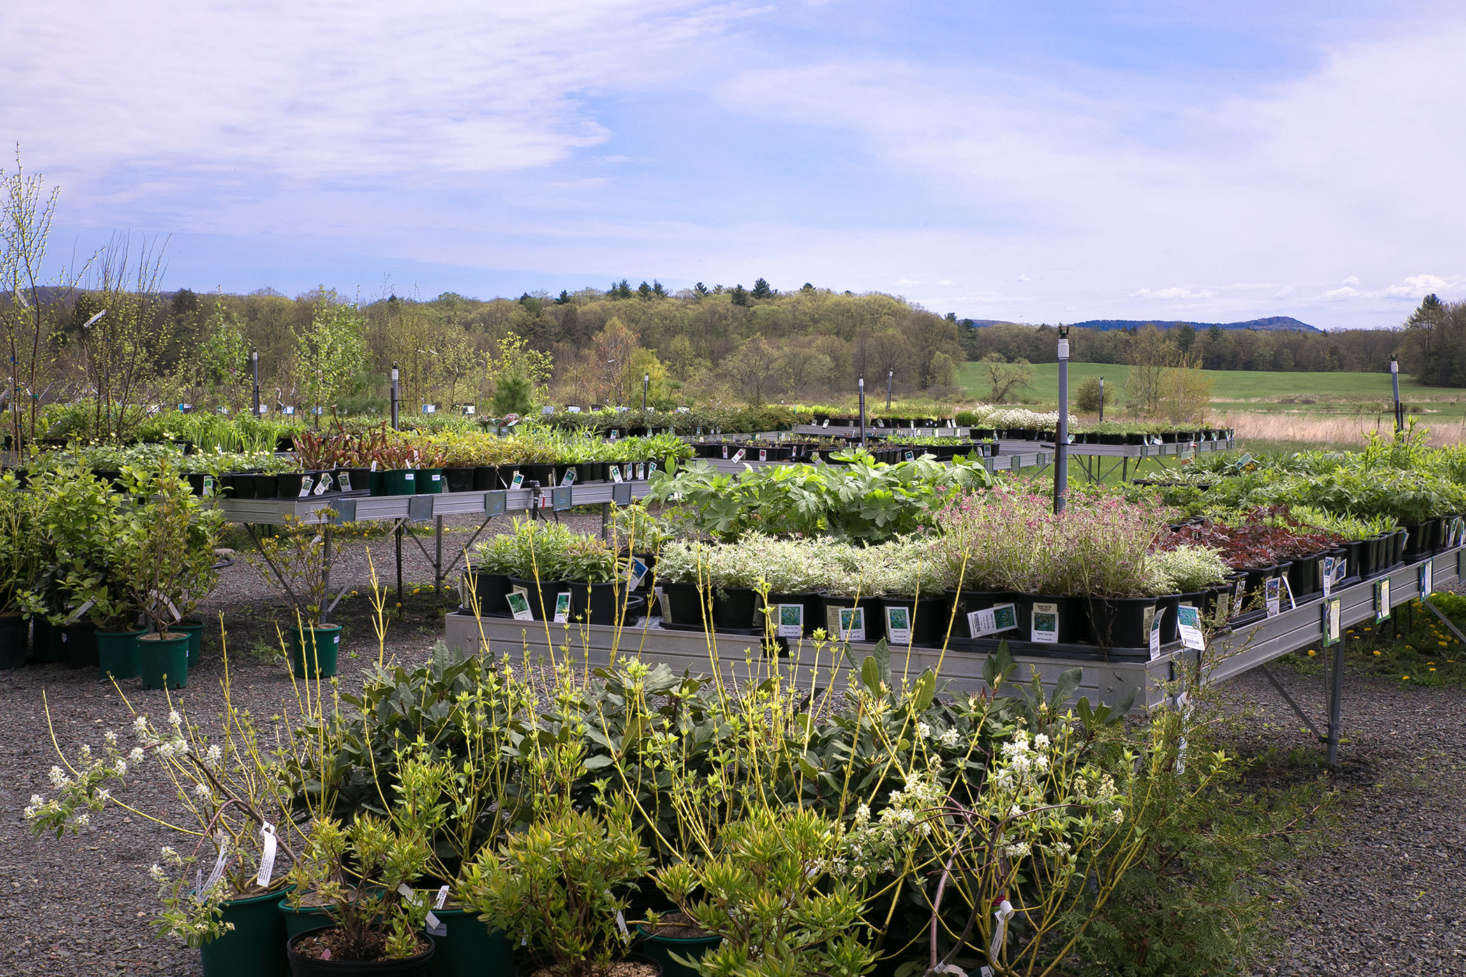 In the retail nursery, Nasami sells hundreds of native species including wildflowers, ferns, grass, trees, and shrubs.